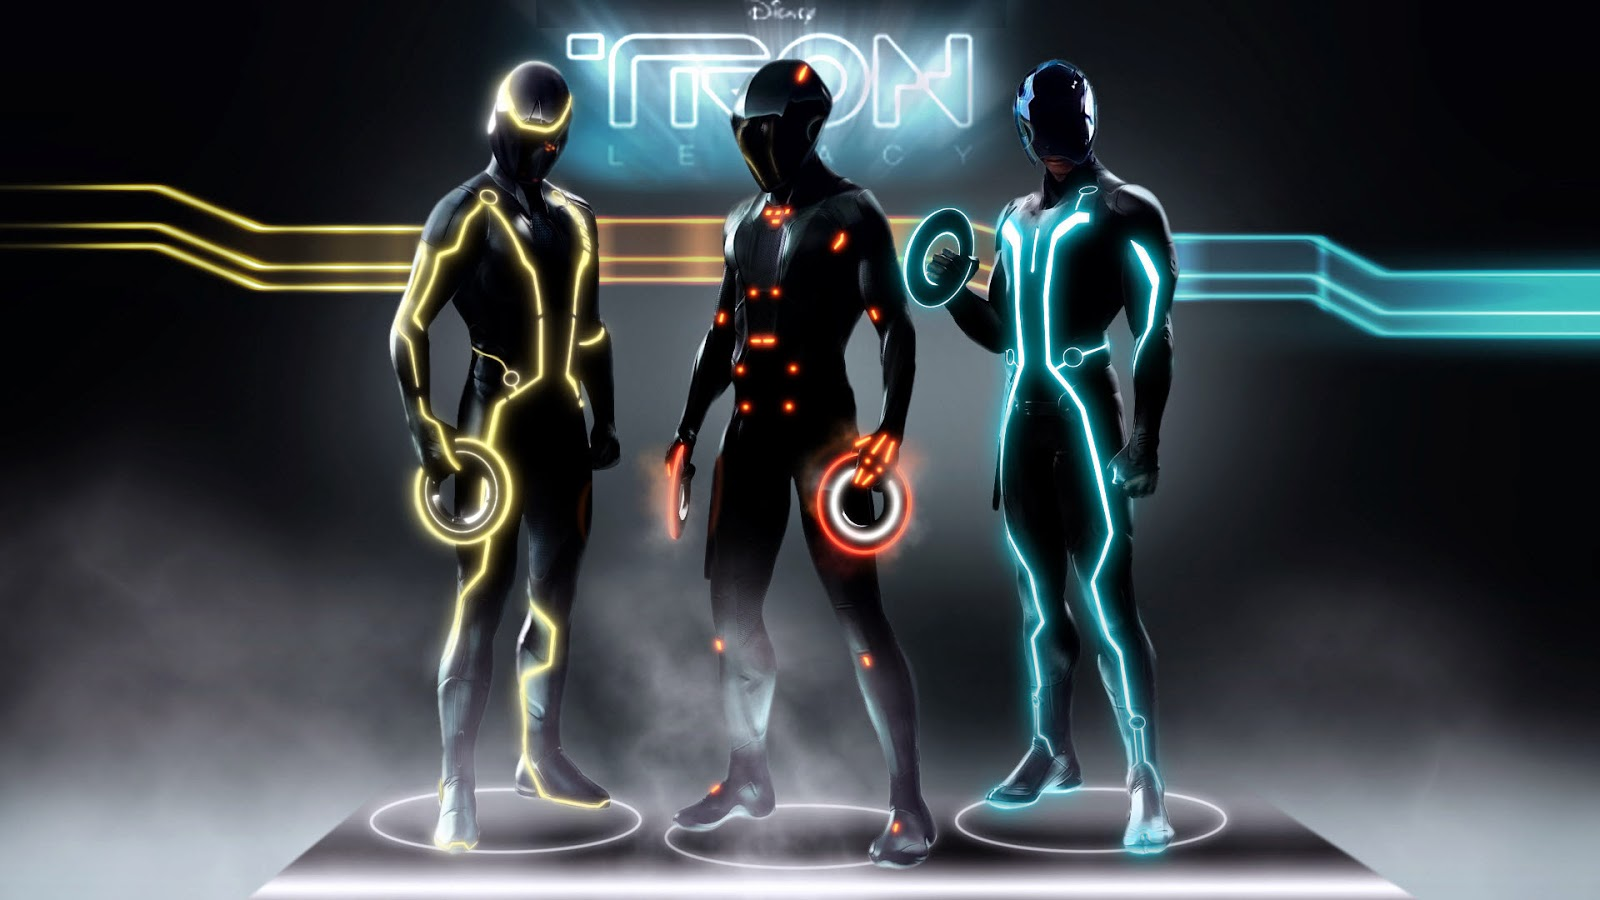 tron legacy characters HD